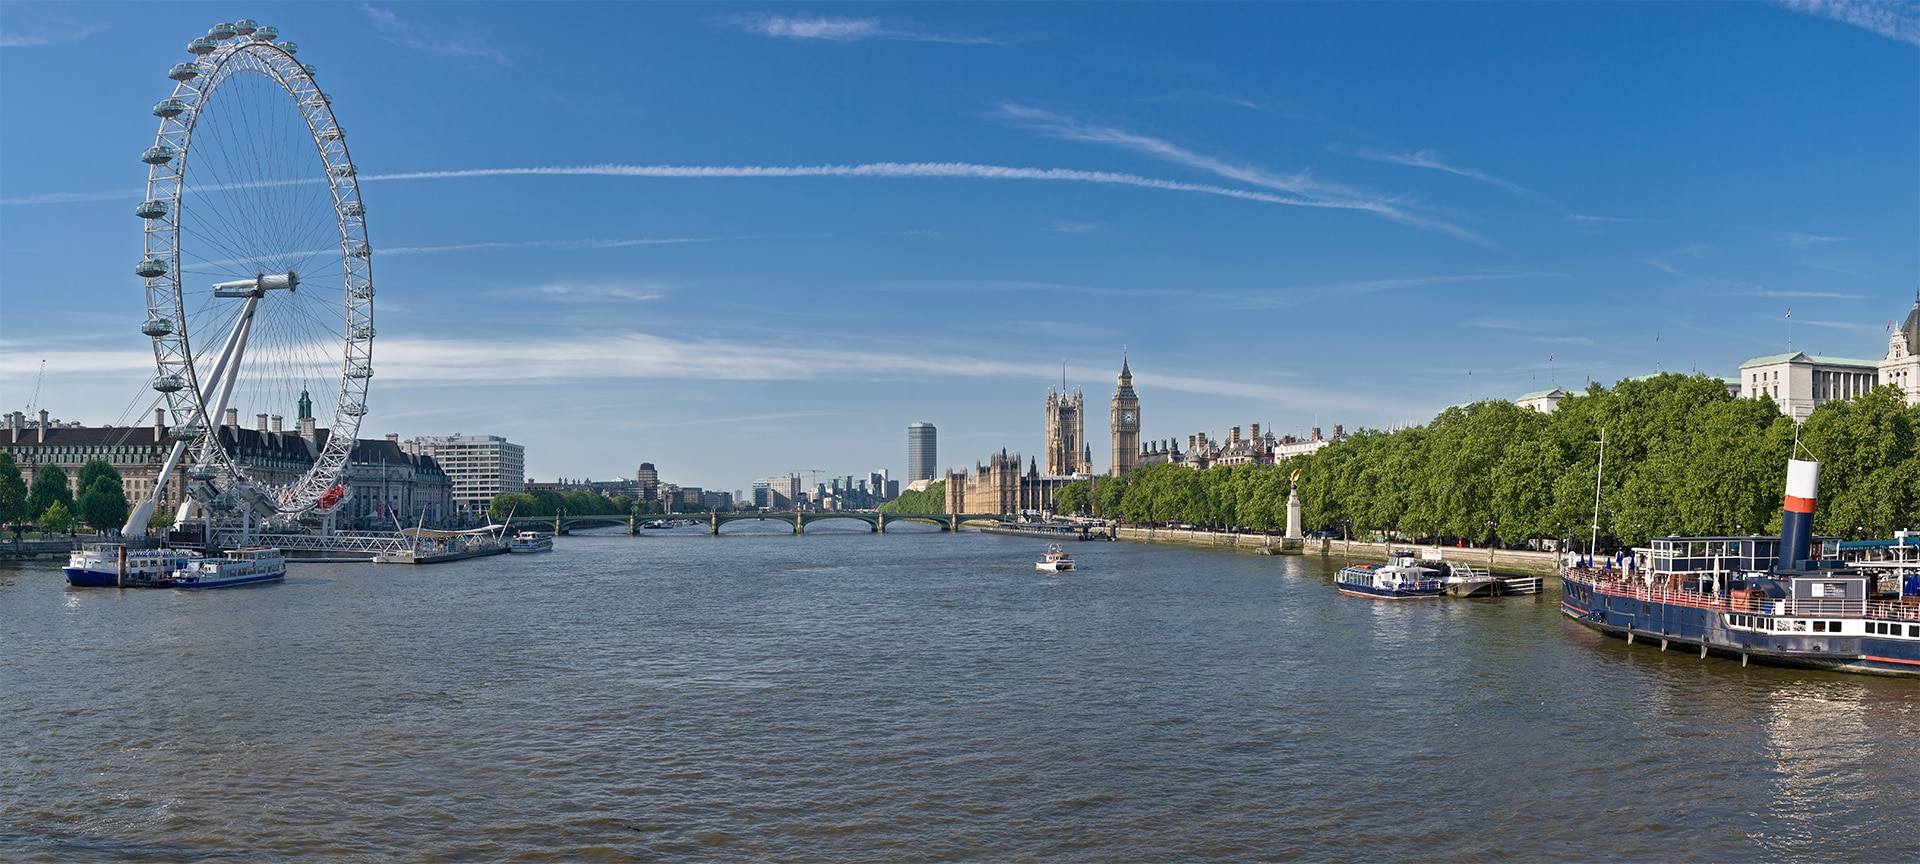 The Thames passes by some of the sights of London - London Eye and its pier to the left, PS Tattershall Castle to the right. In the centre, upstream, Westminster Bridge and Big Ben.